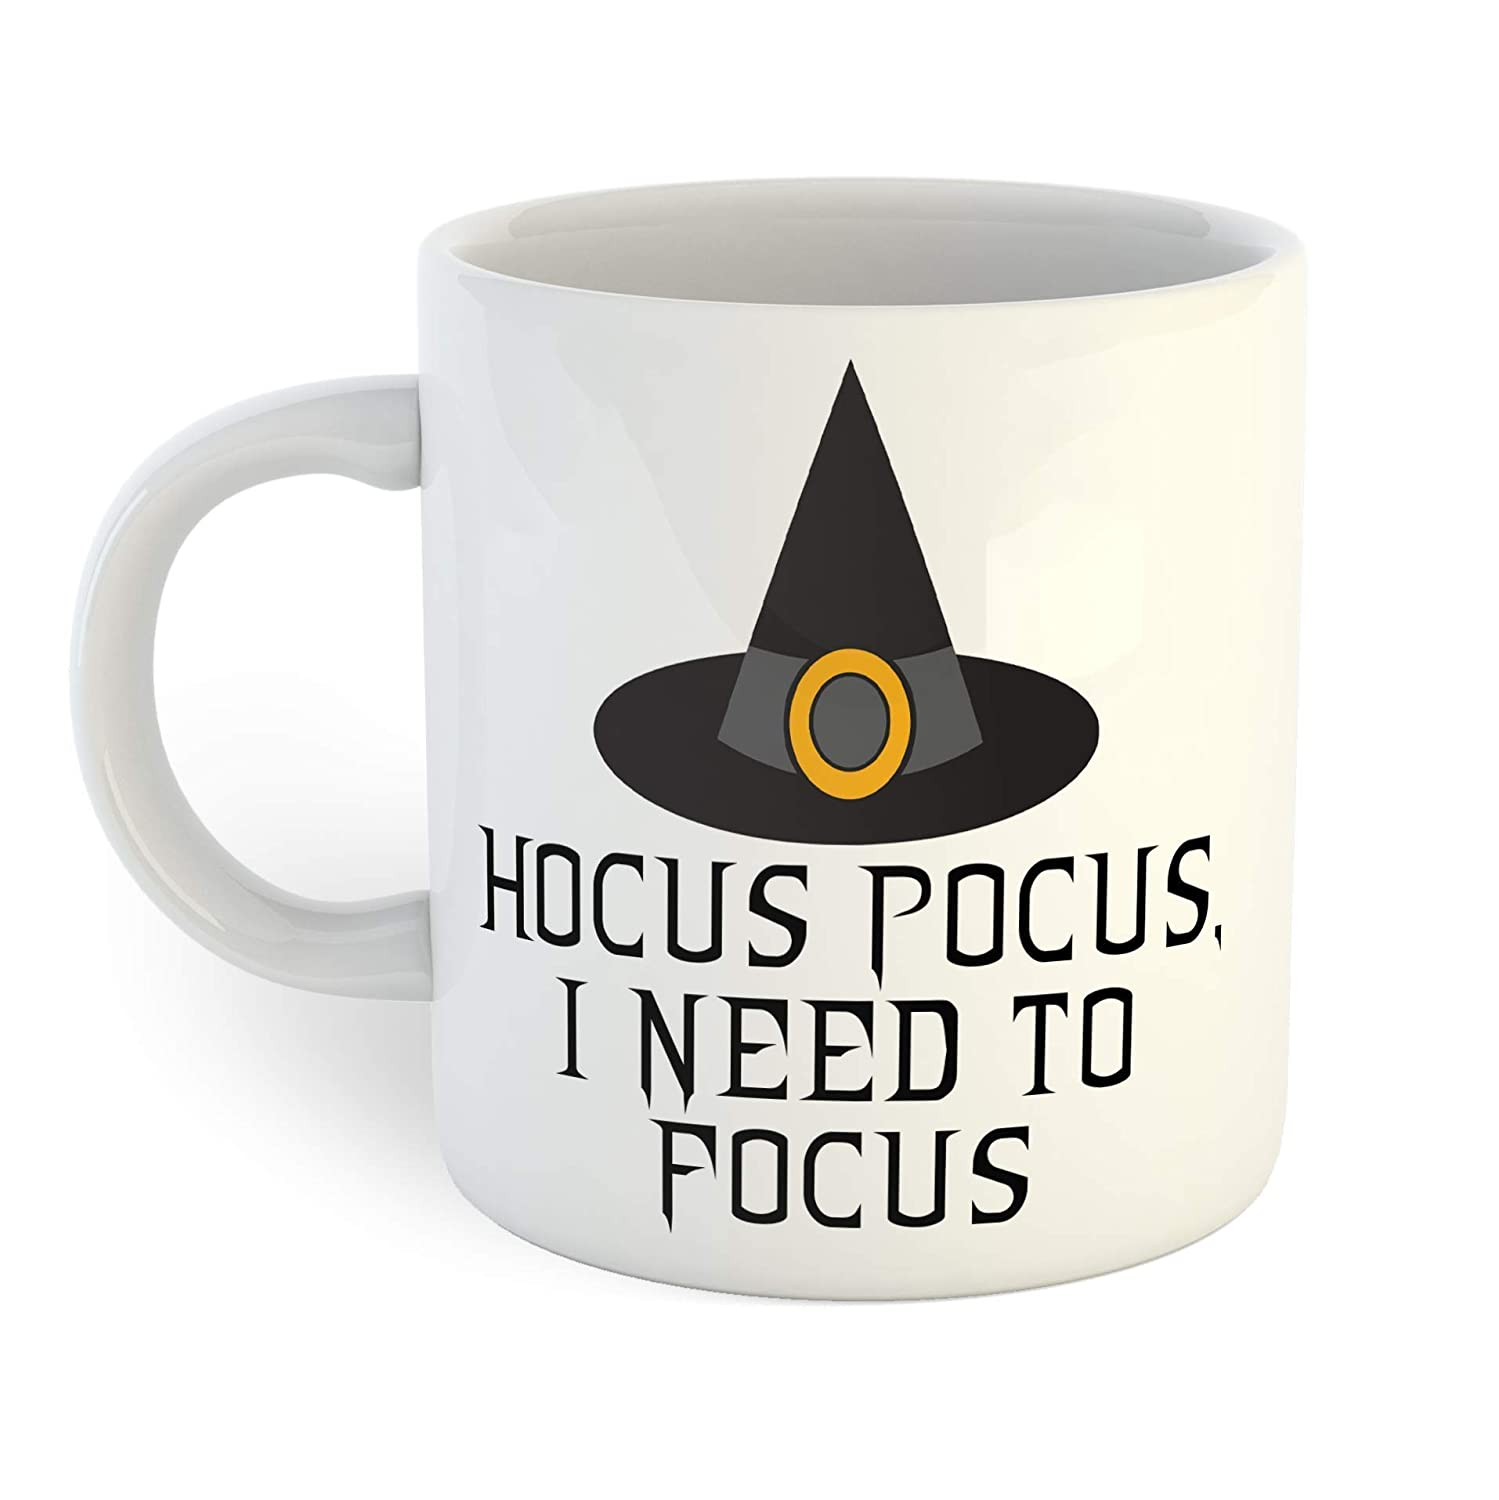 Hocus Gorgeous Manufacturer direct delivery Pocus Mug Coffee